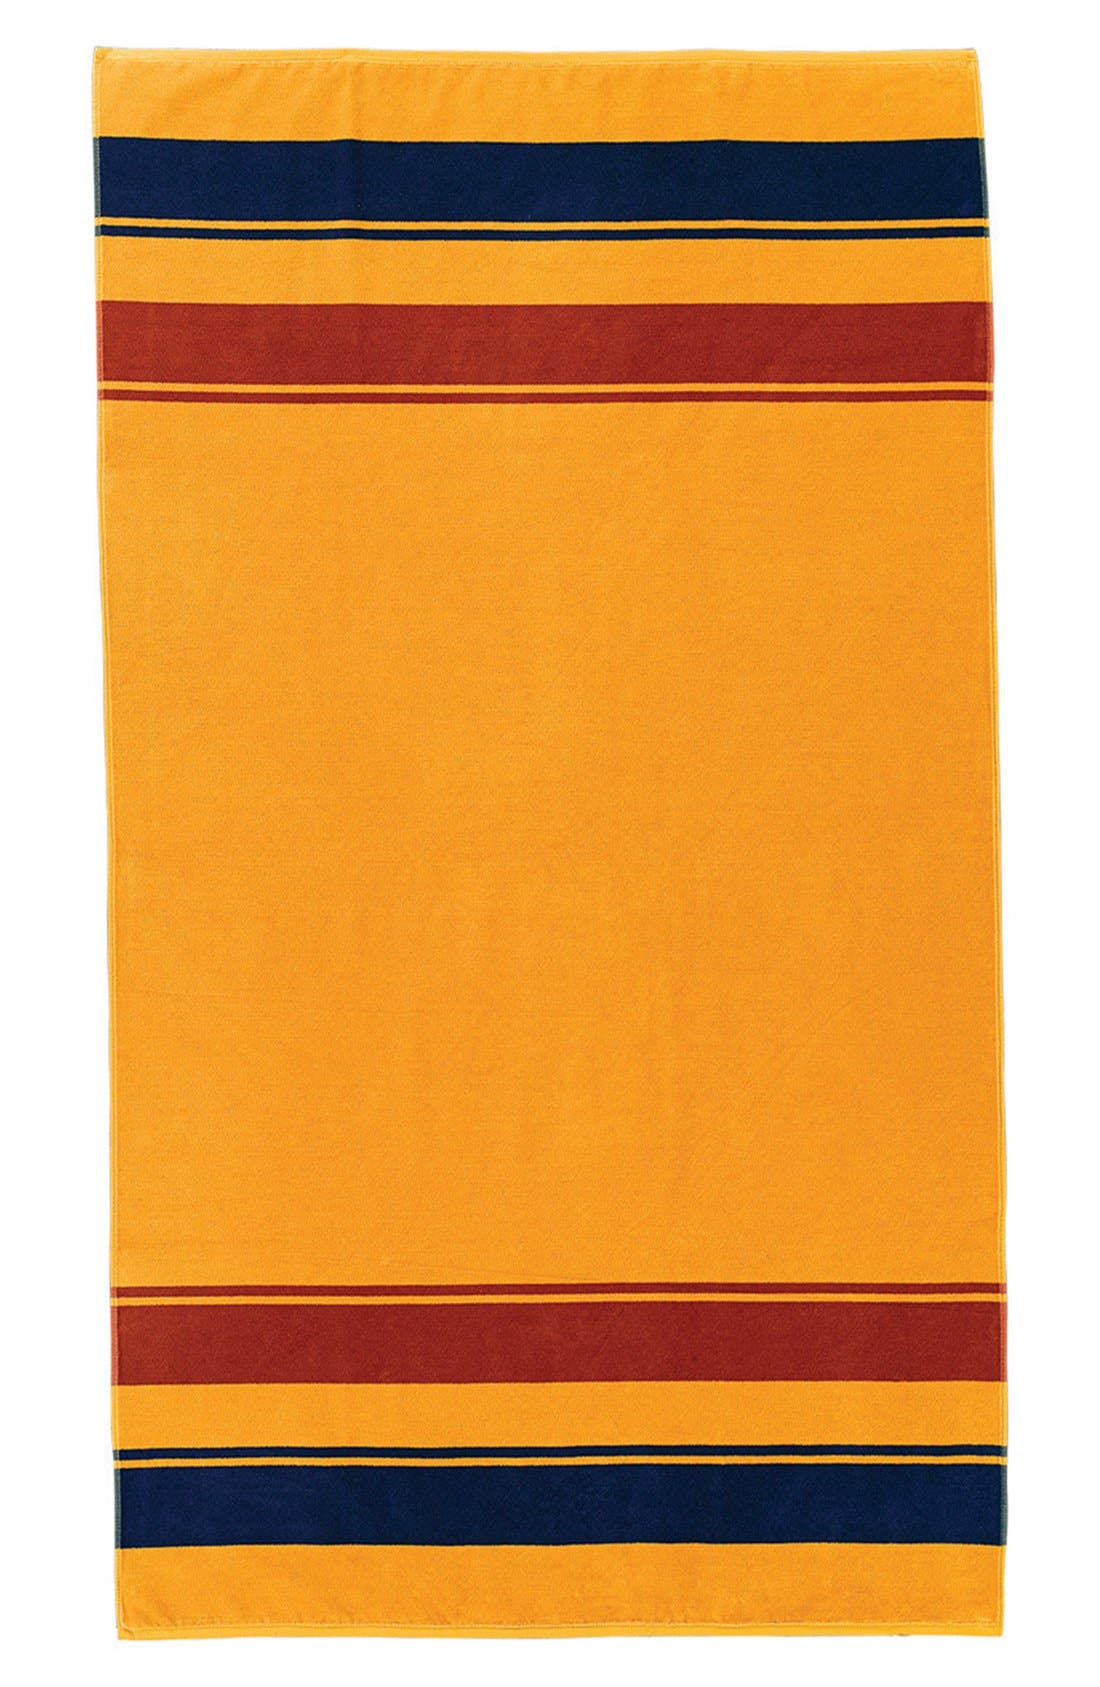 Main Image - Pendleton 'National Park' Beach Towel